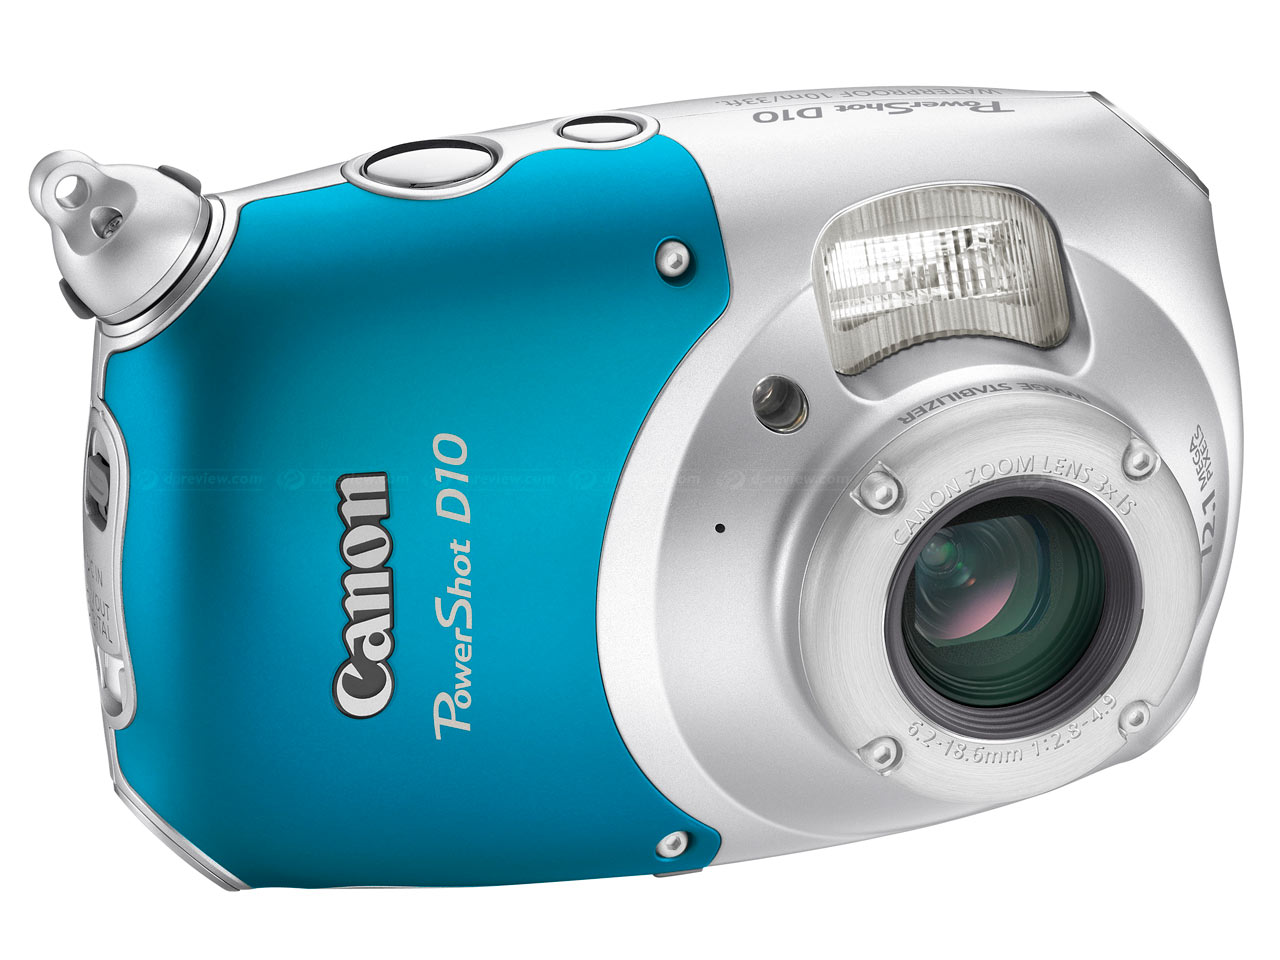 Canon PowerShot D10 waterproof camera emerges: Digital Photography ...